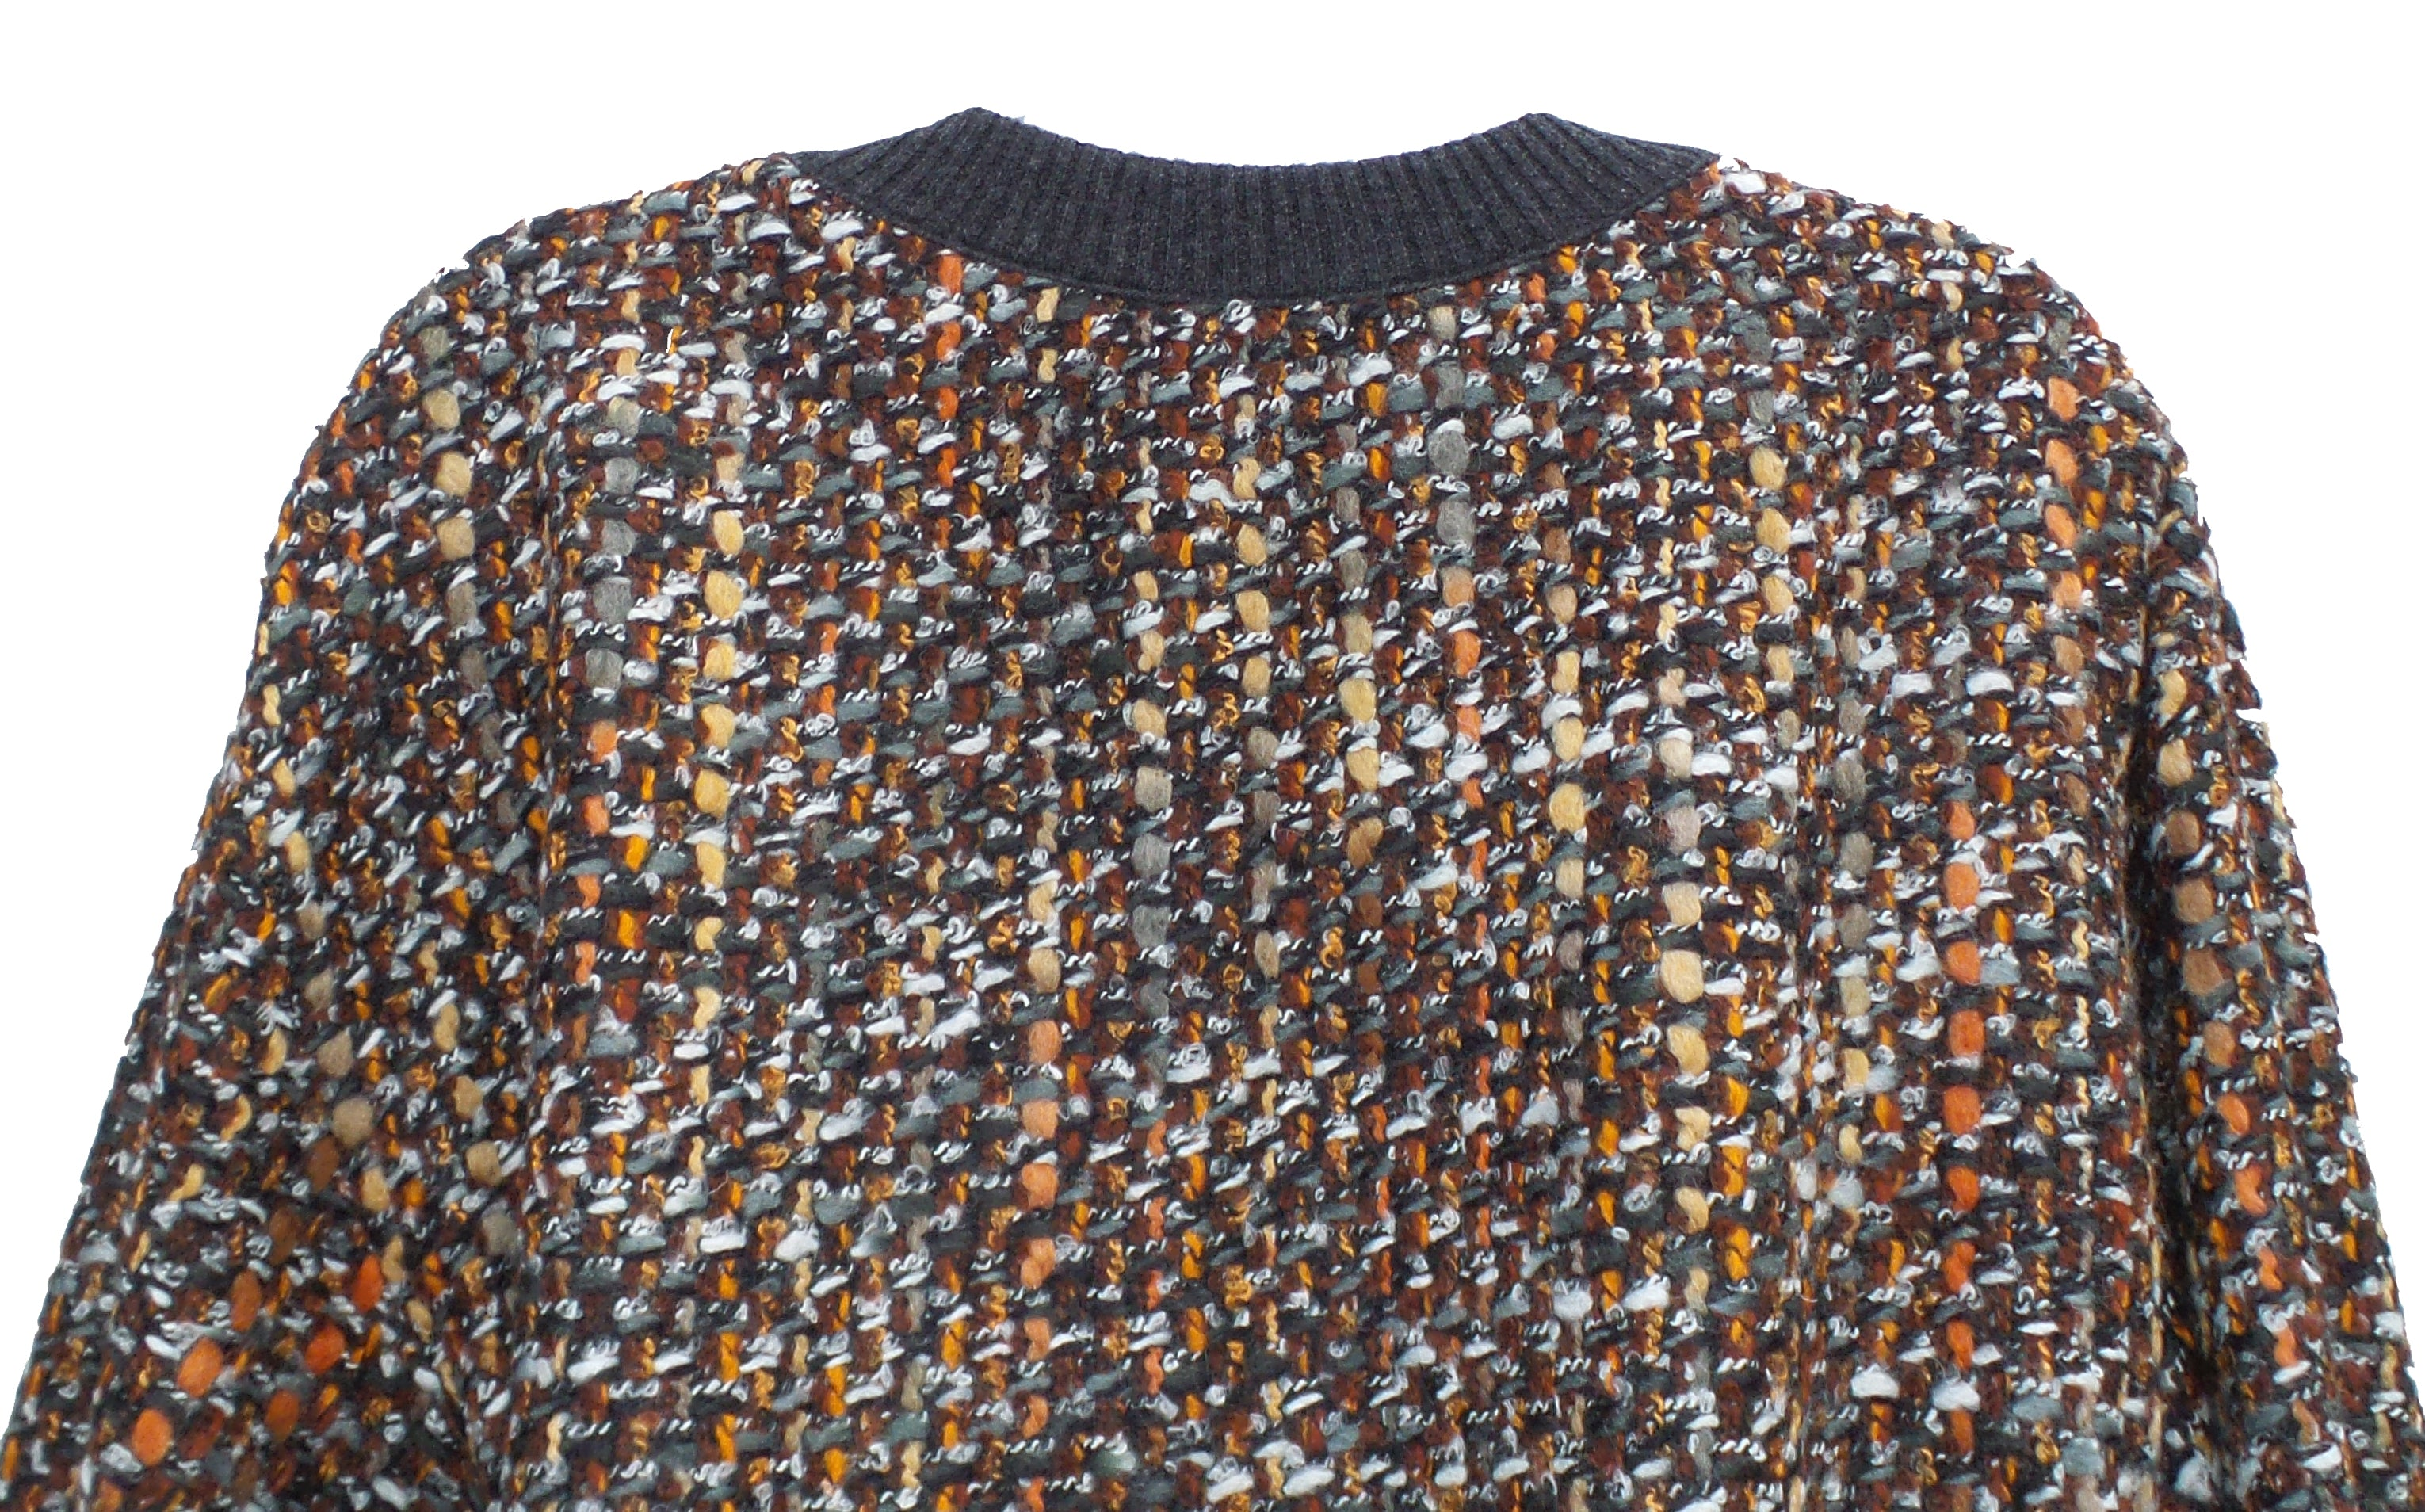 DOLCE & GABBANA Copper Multi Tweed Gray Rib Trim Fringe Hem Sweater Top 40